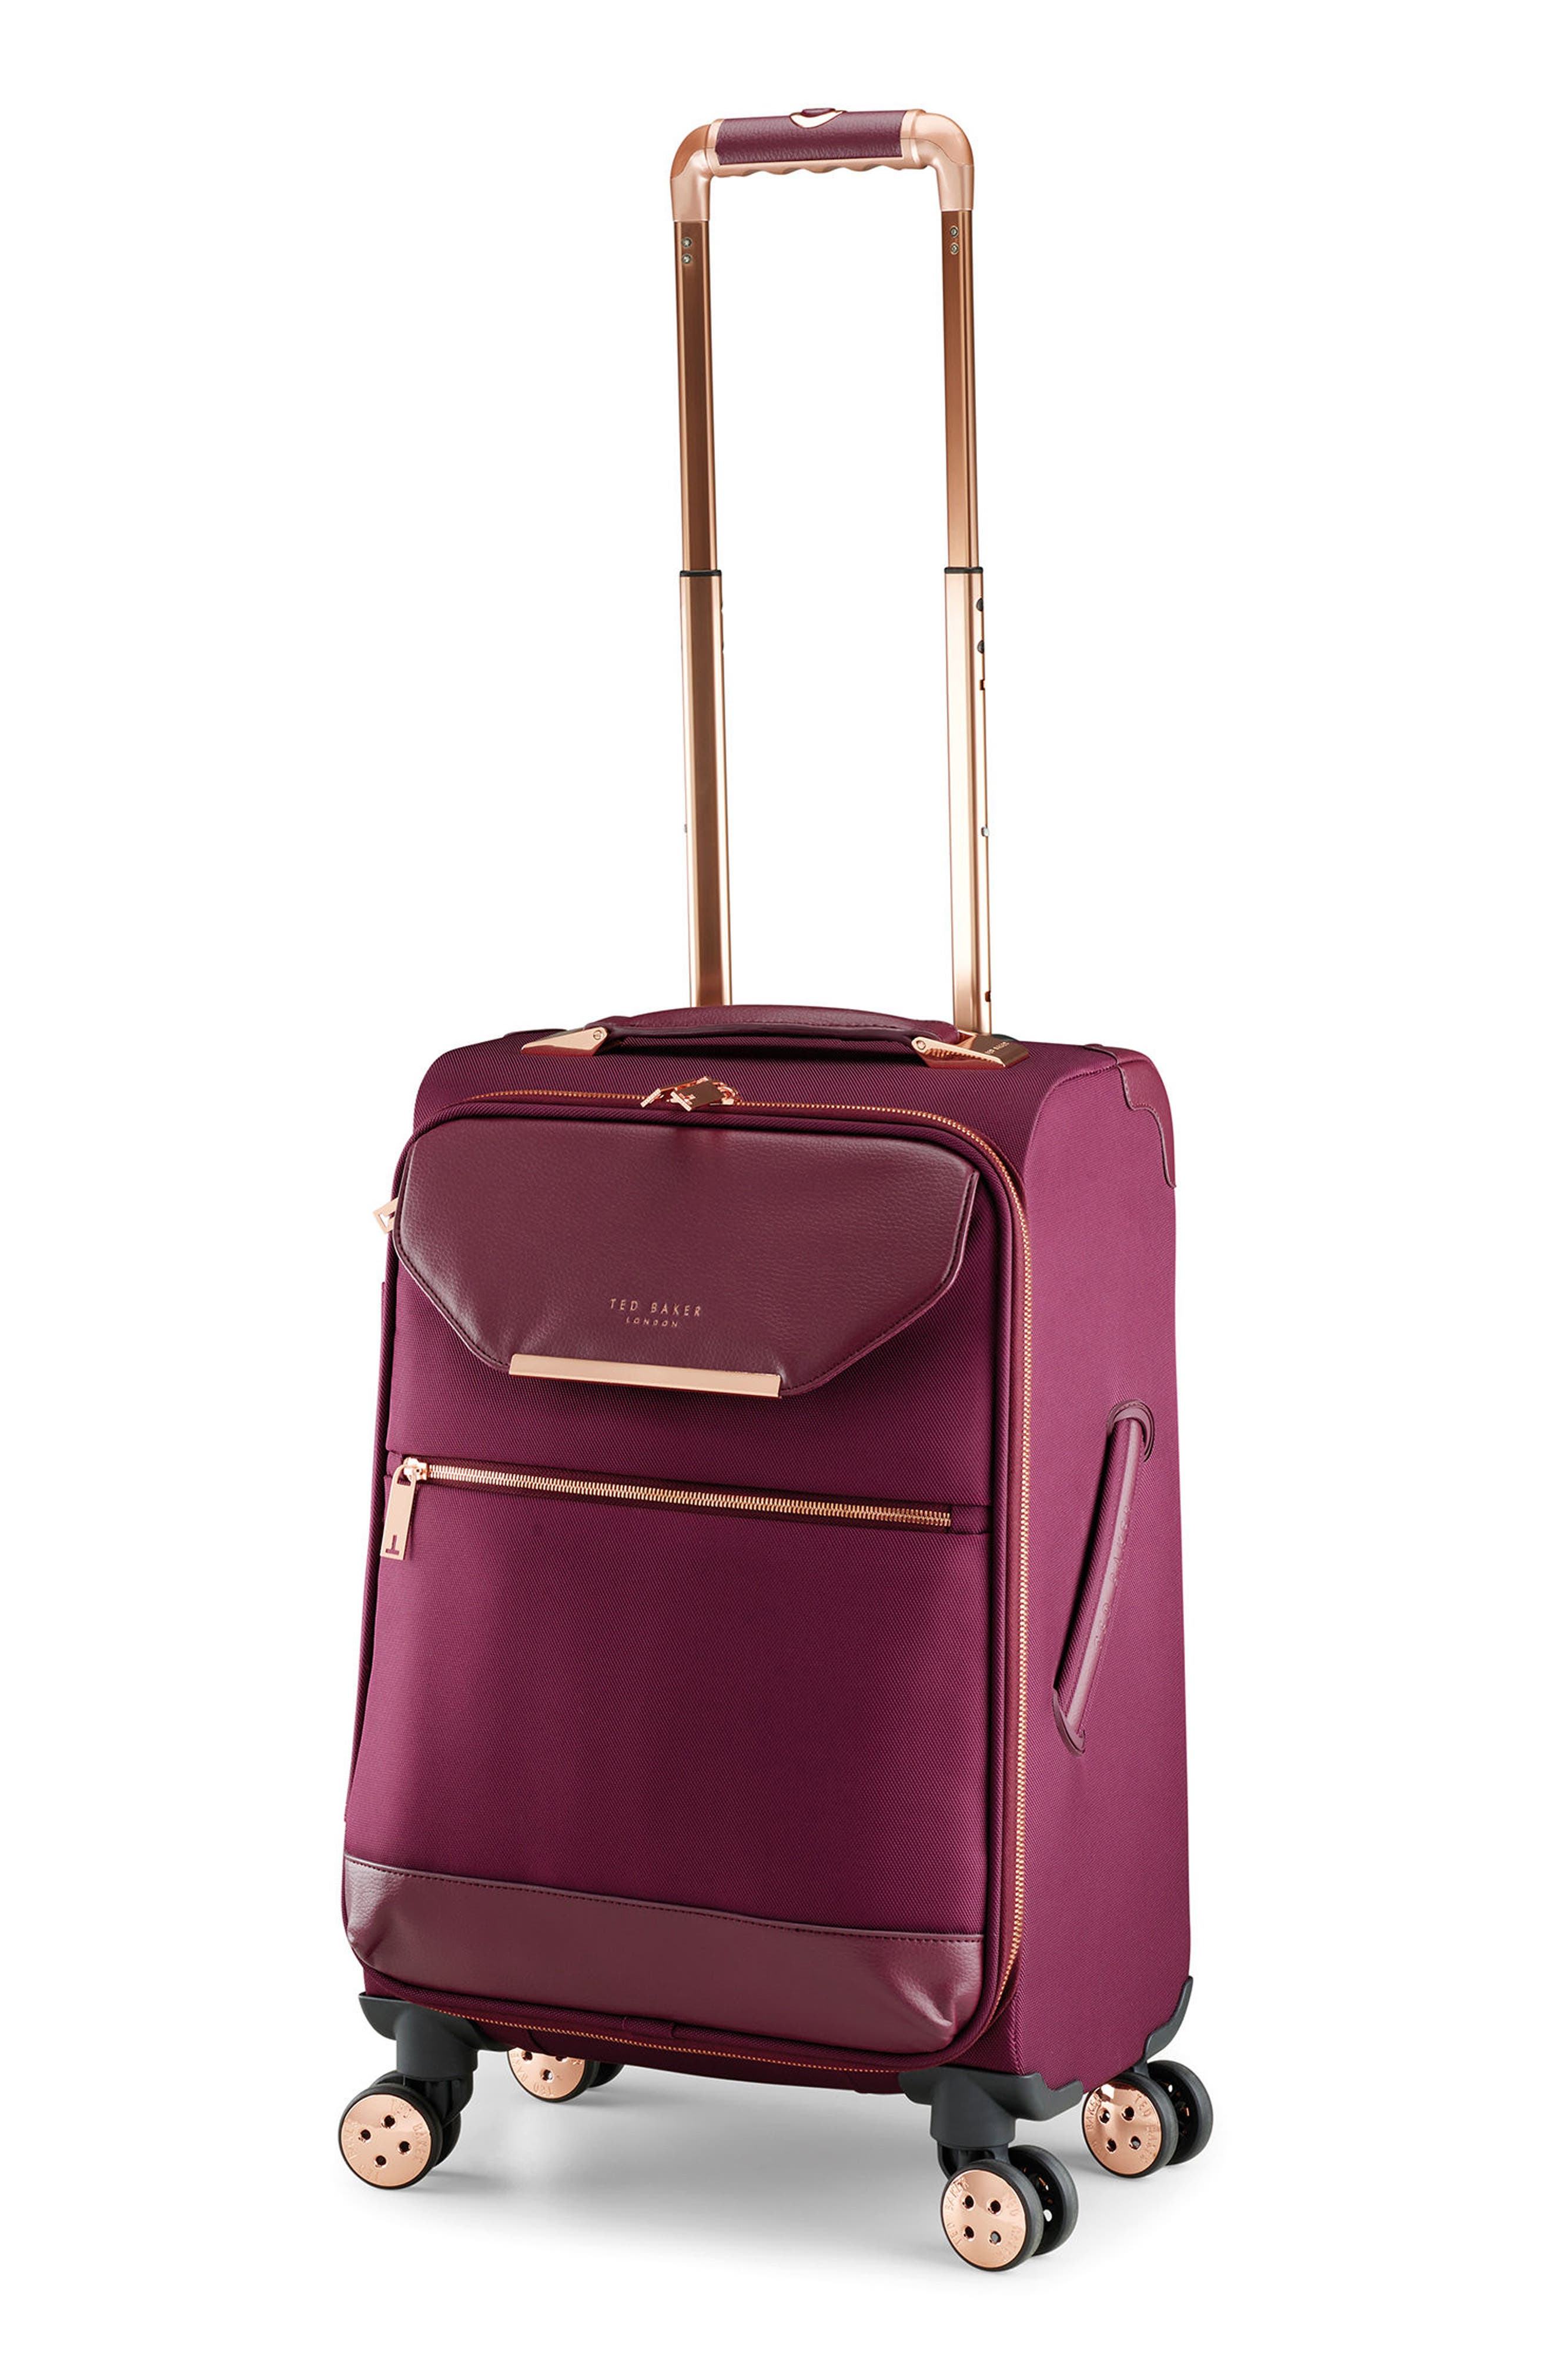 22-Inch Spinner Trolley Packing Case,                             Alternate thumbnail 3, color,                             BURGUNDY